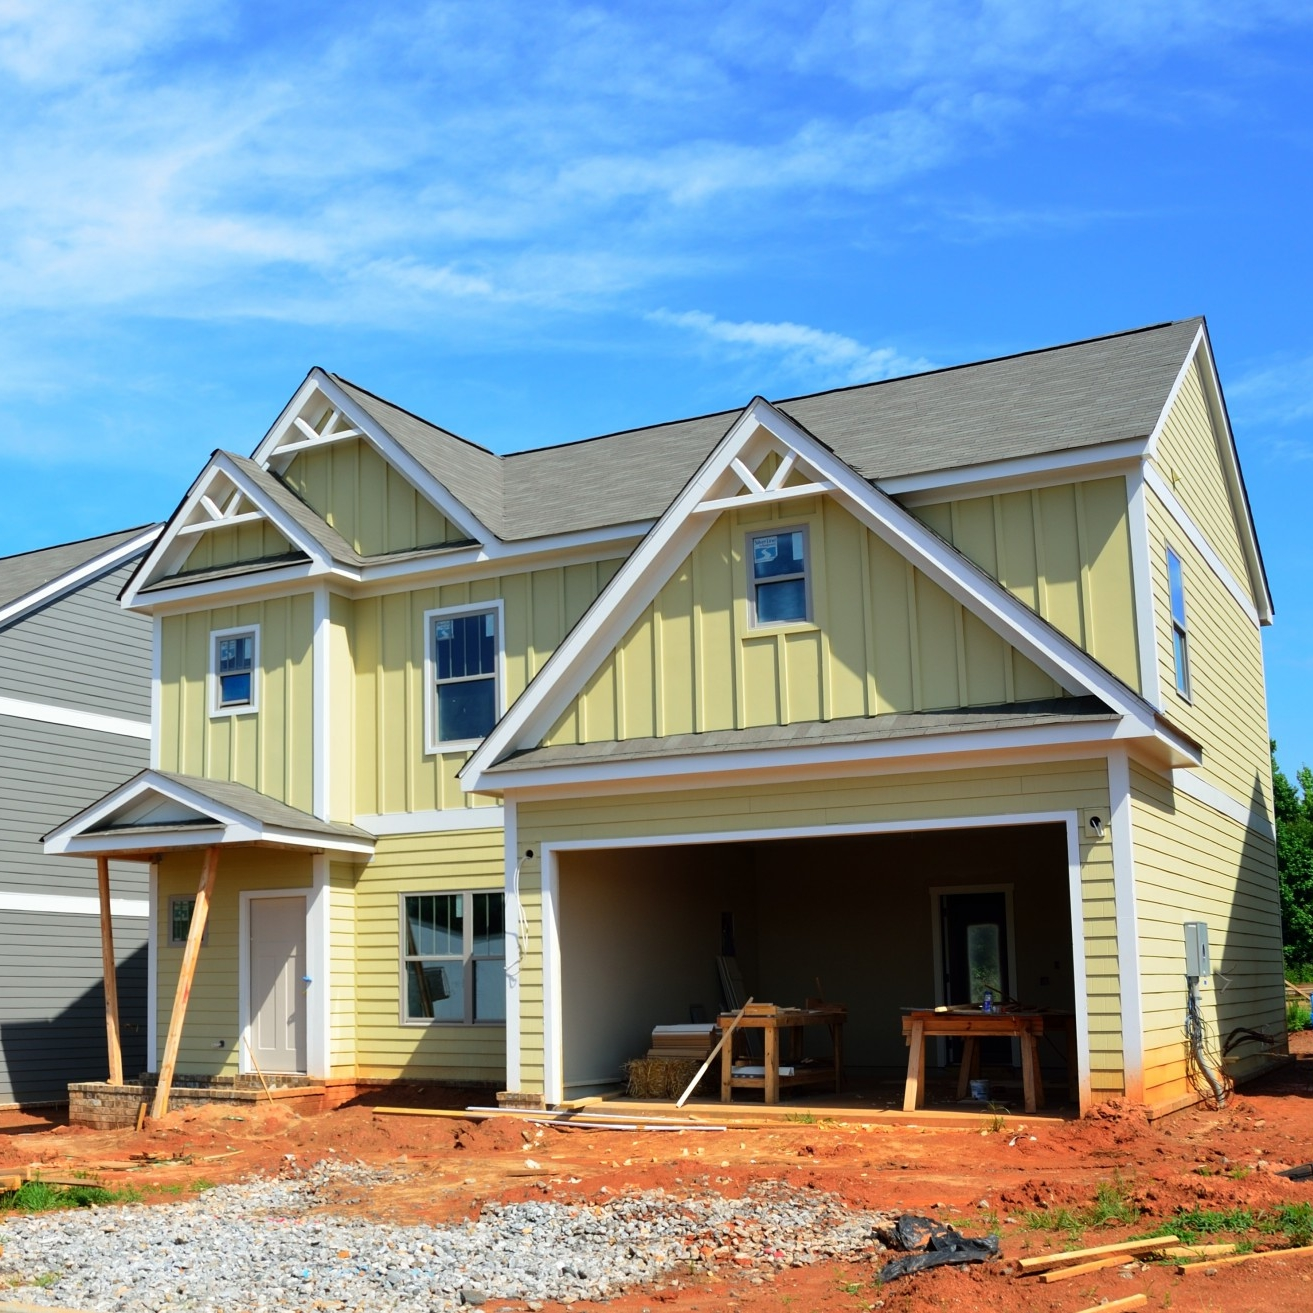 new-home-construction-1423311855gGv.jpg